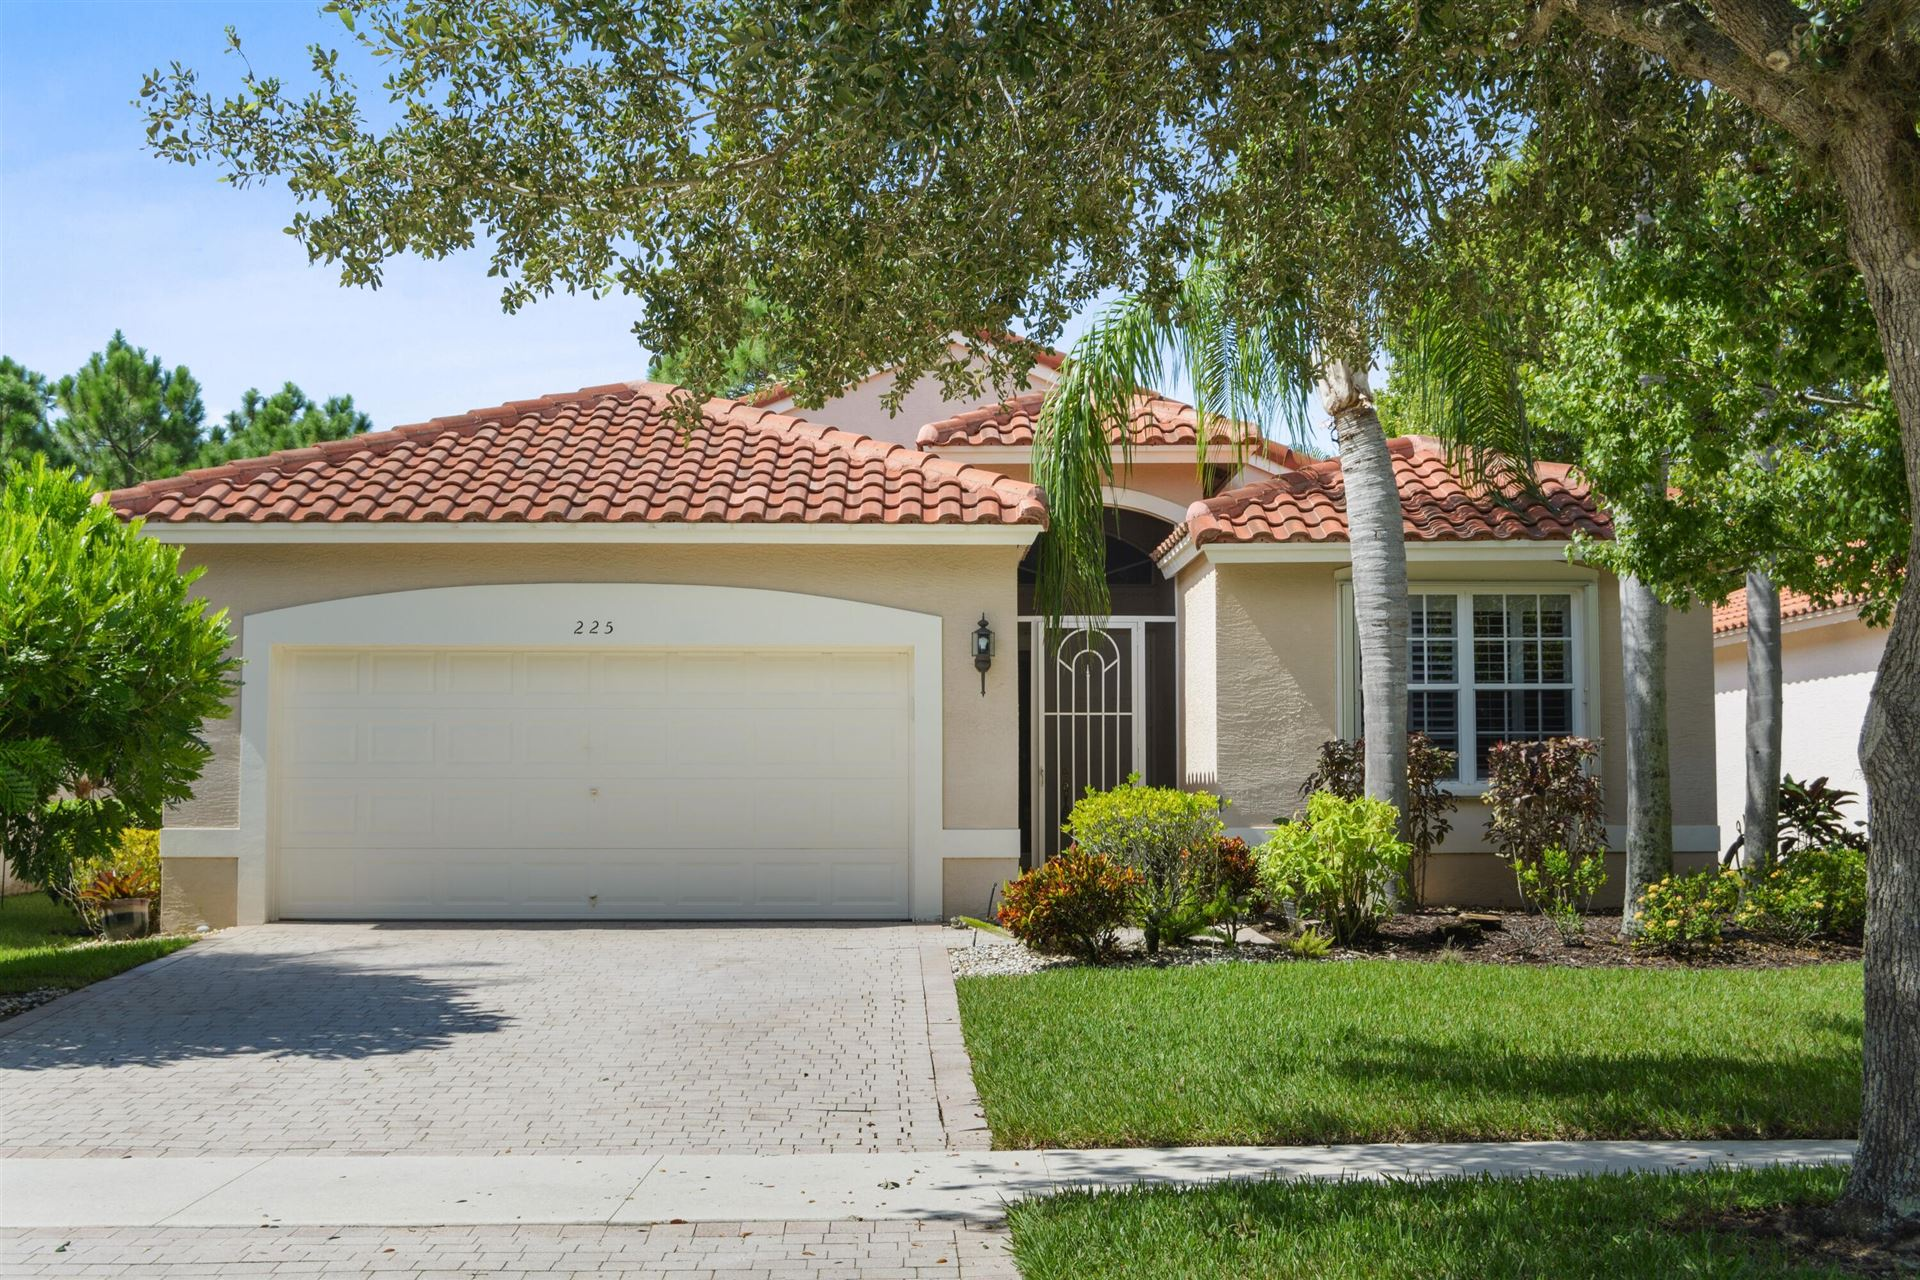 Photo of 225 NW Chorale Way, Port Saint Lucie, FL 34986 (MLS # RX-10745709)